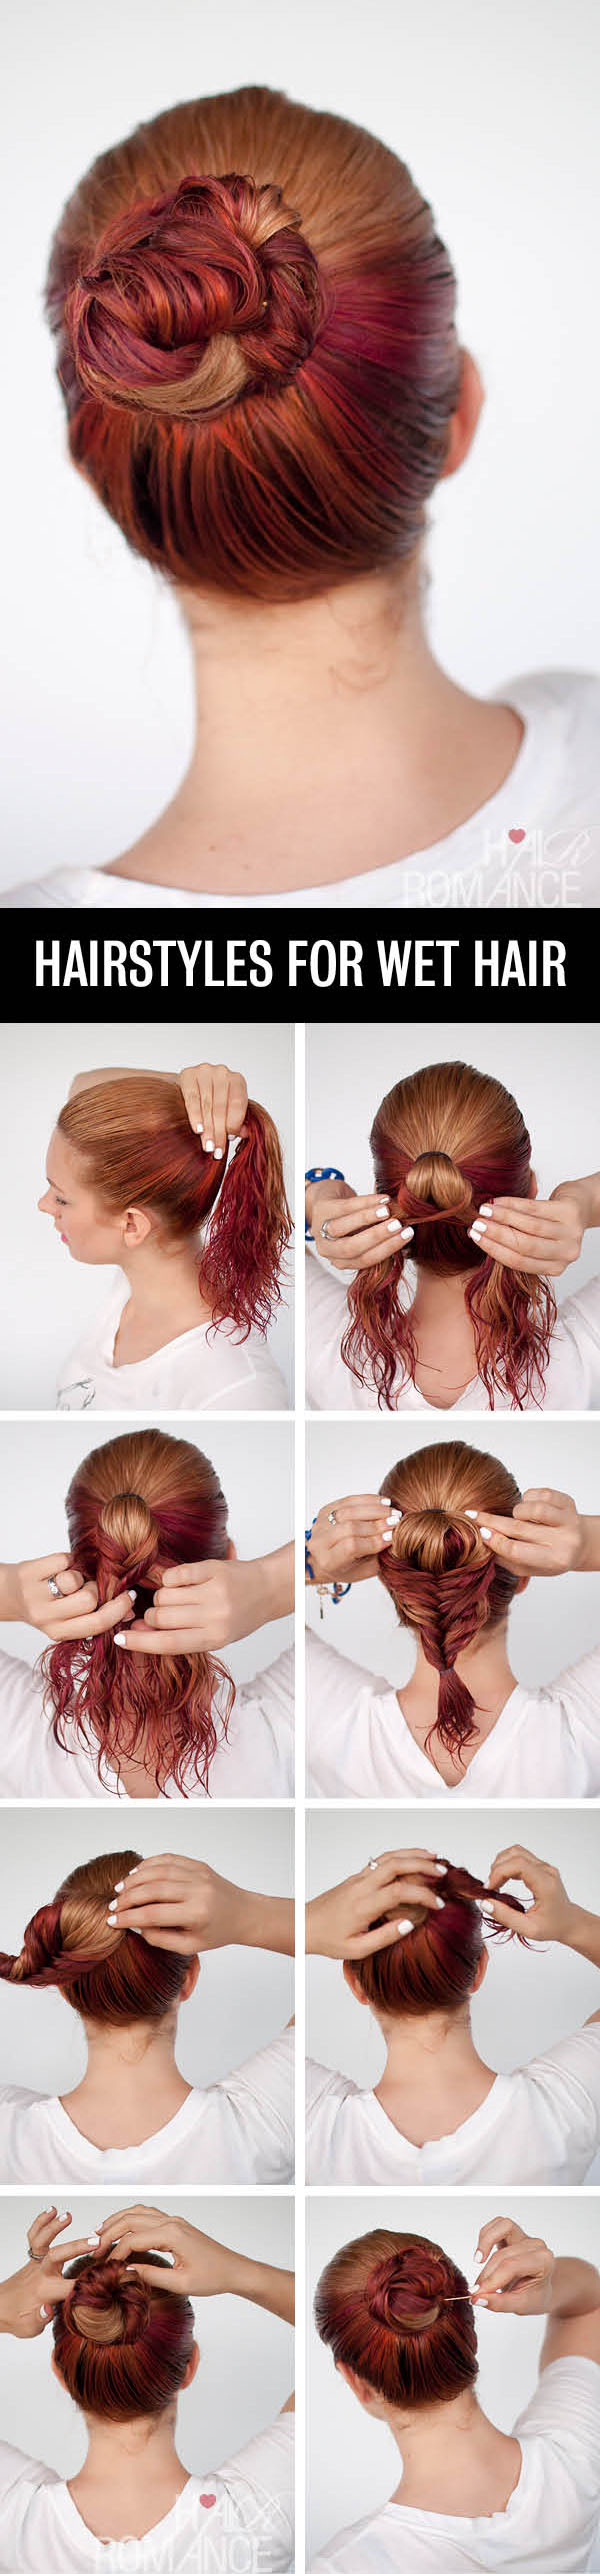 Get ready fast with 7 easy hairstyle tutorials for wet ...